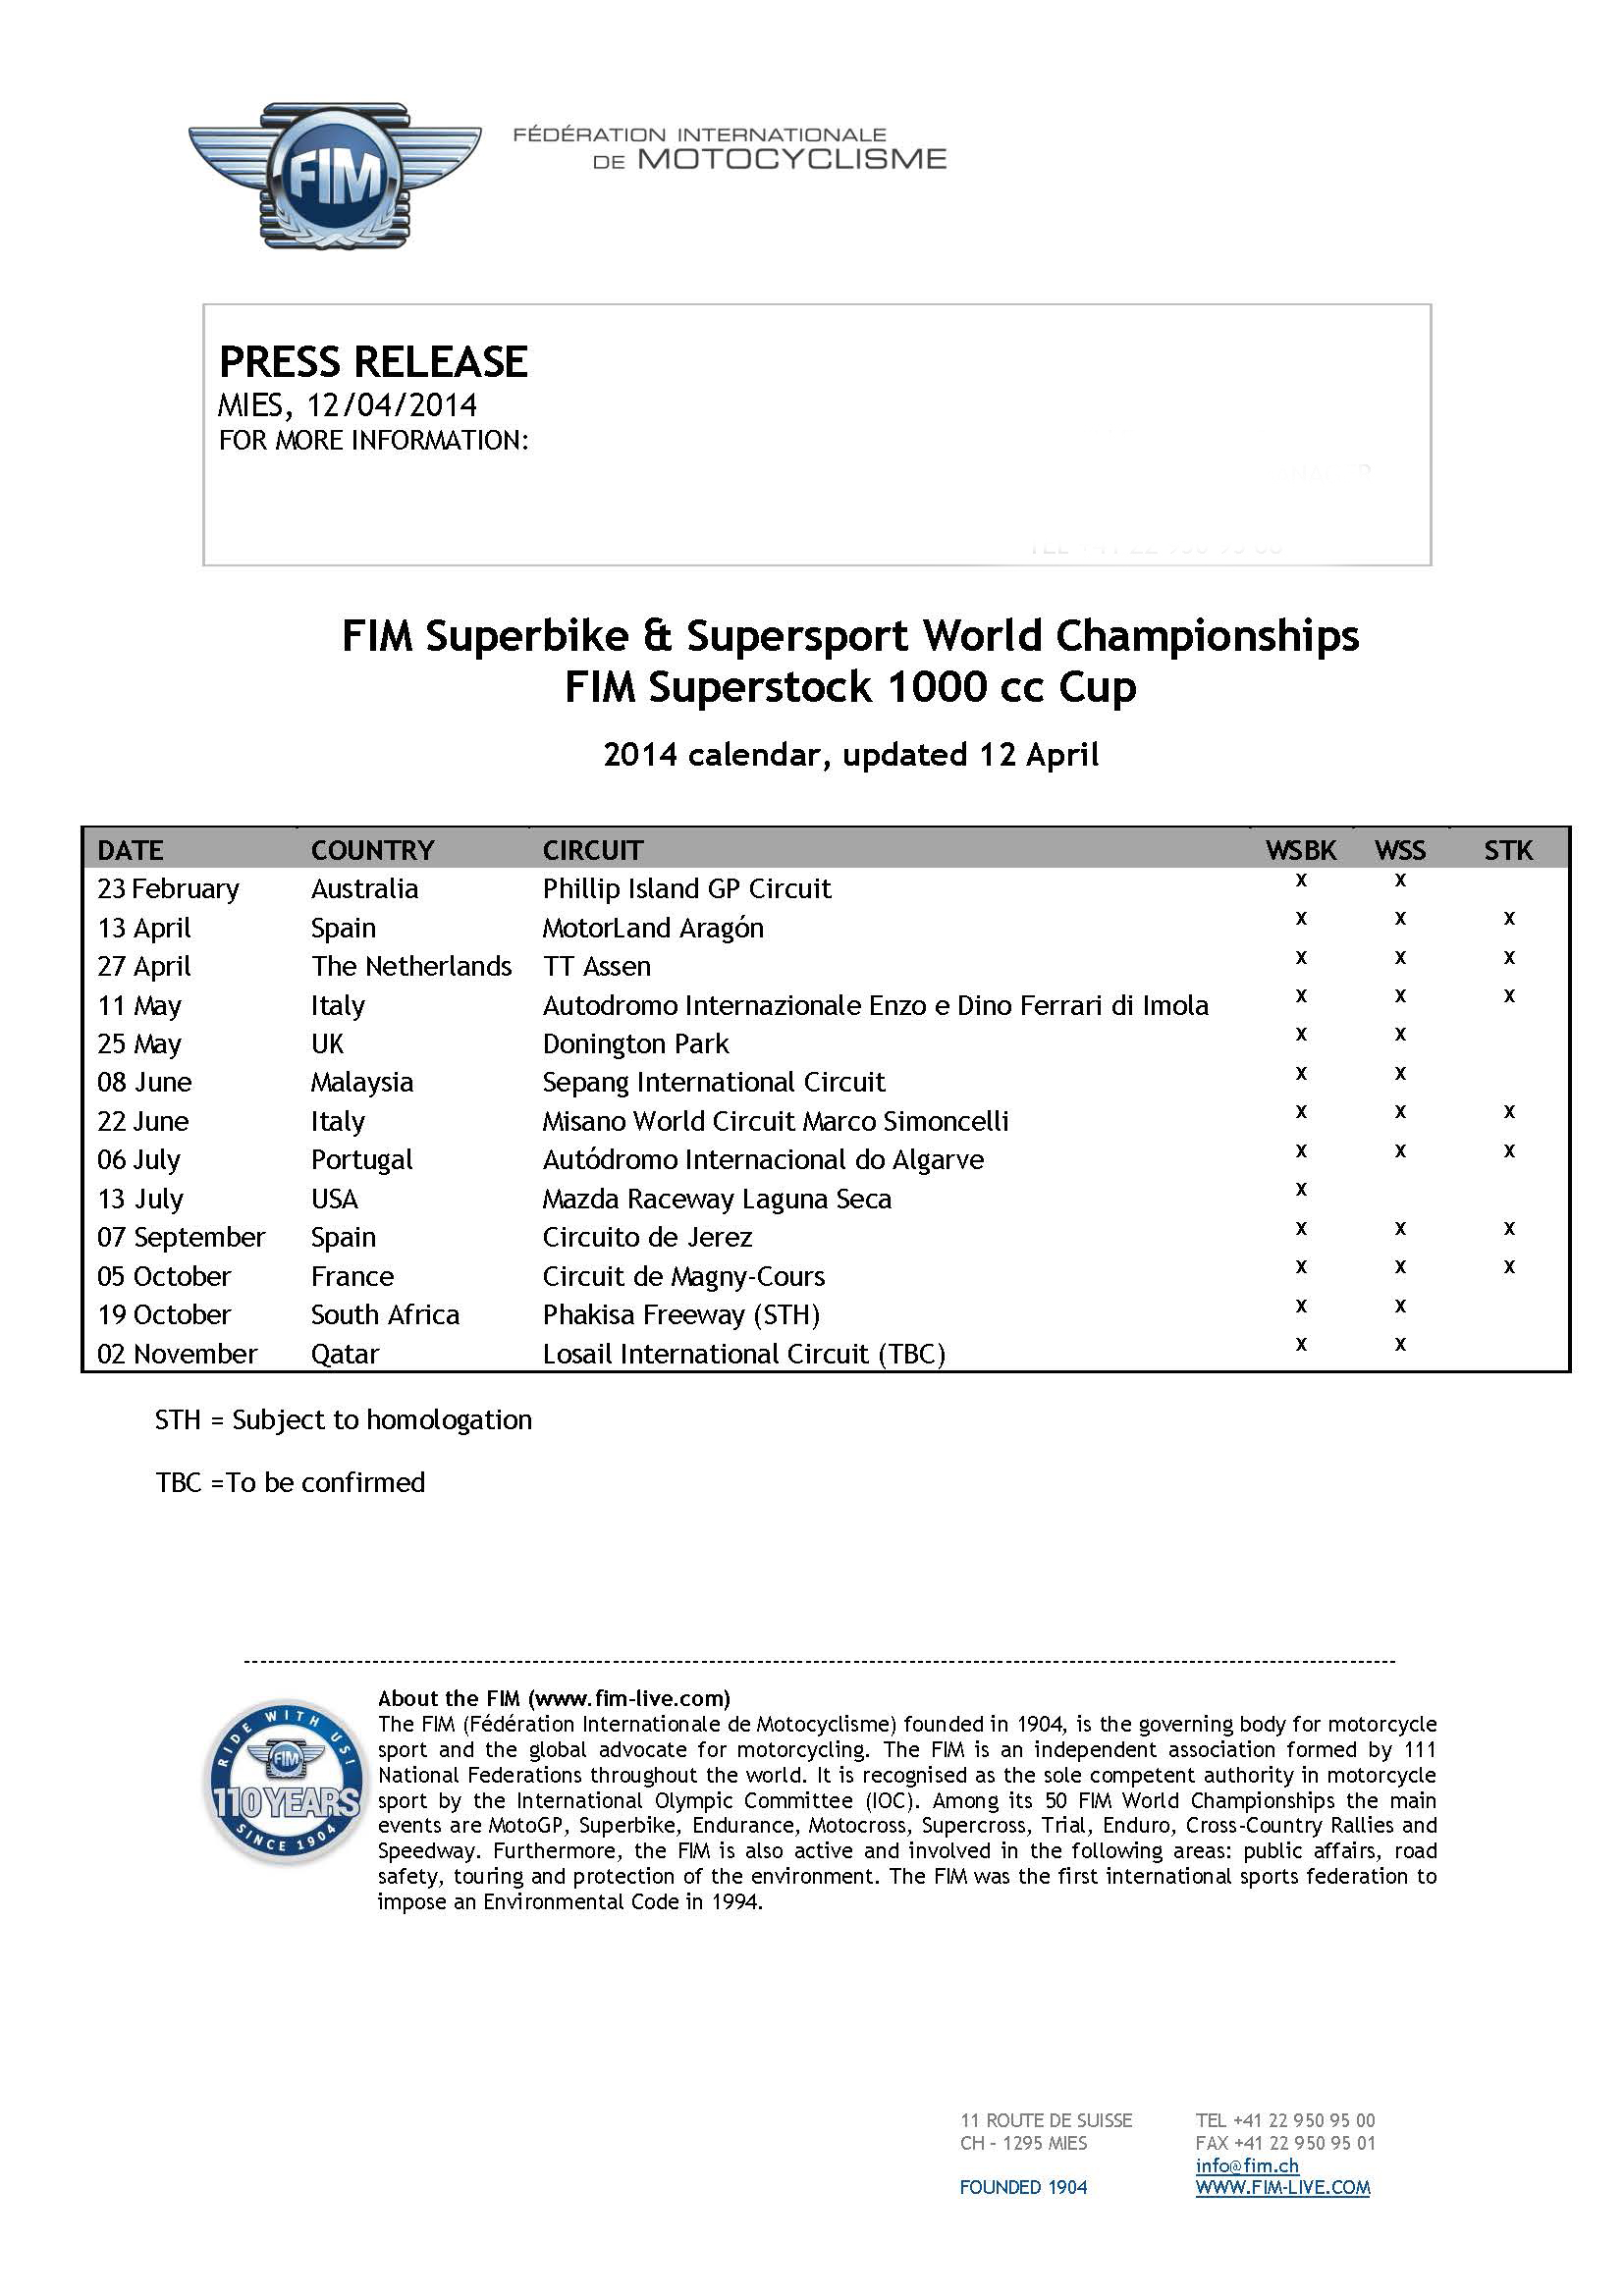 FIM SBK SSP World Champ  Superstock 1000cc Cup - 2014 calendar updated 12 April